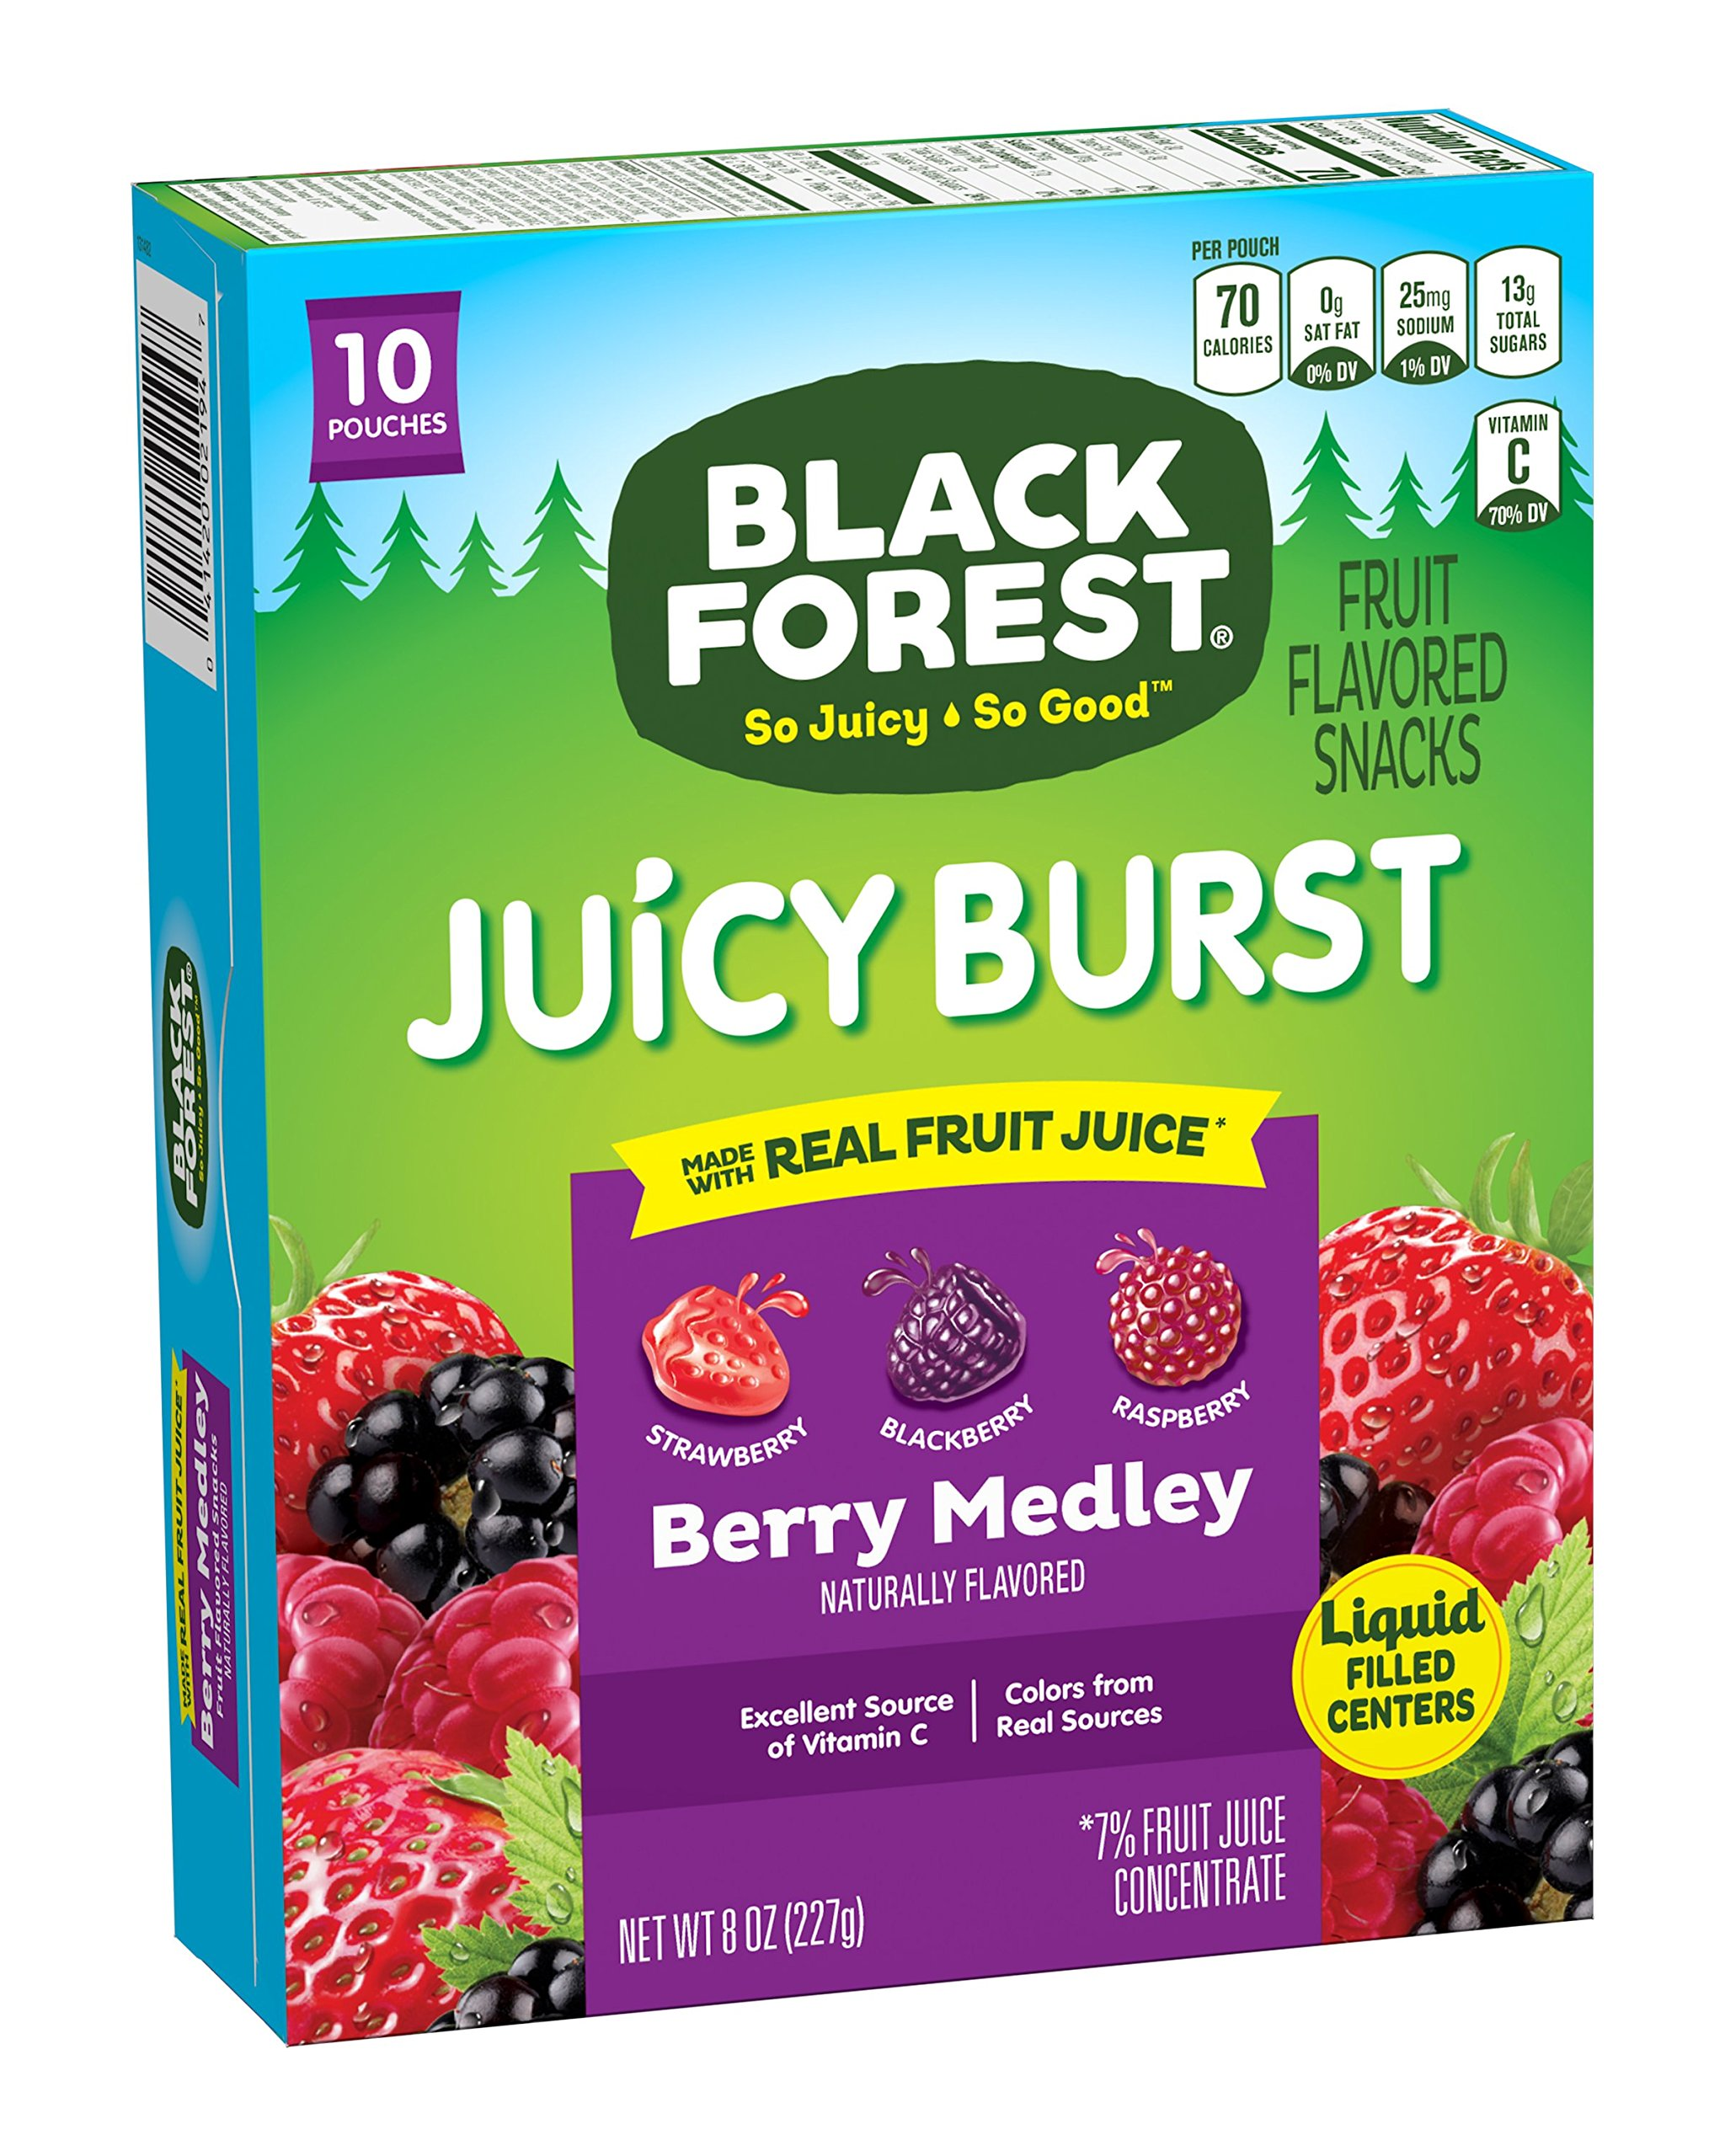 Black Forest Fruity Medley Berry Mix Candy, Strawberry, Raspberry and Blackberry, 10 Count (Pack of 10) by Black Forest